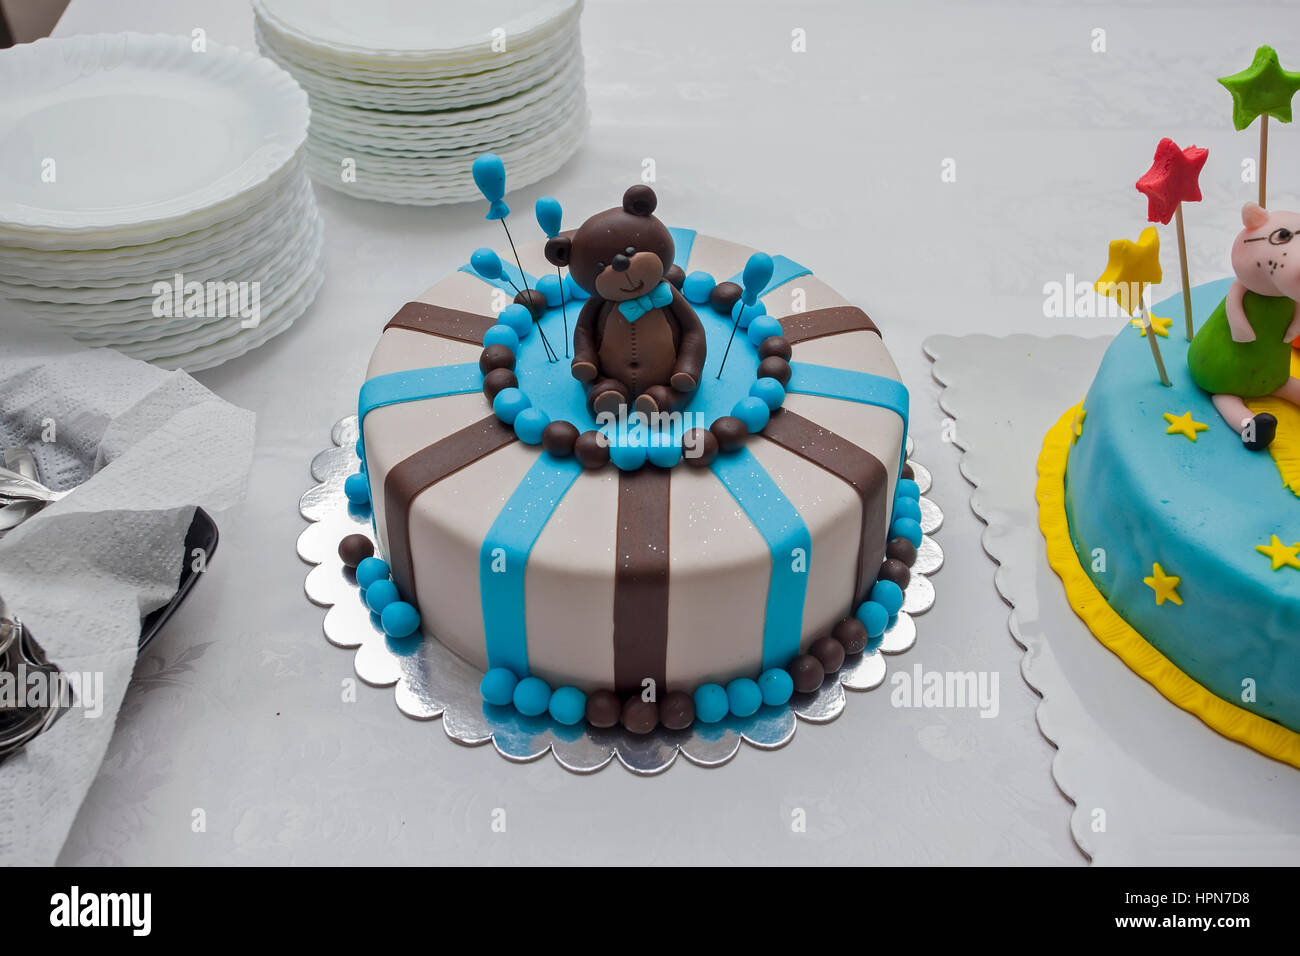 Beautiful Birthday Cakes Homemade For Children